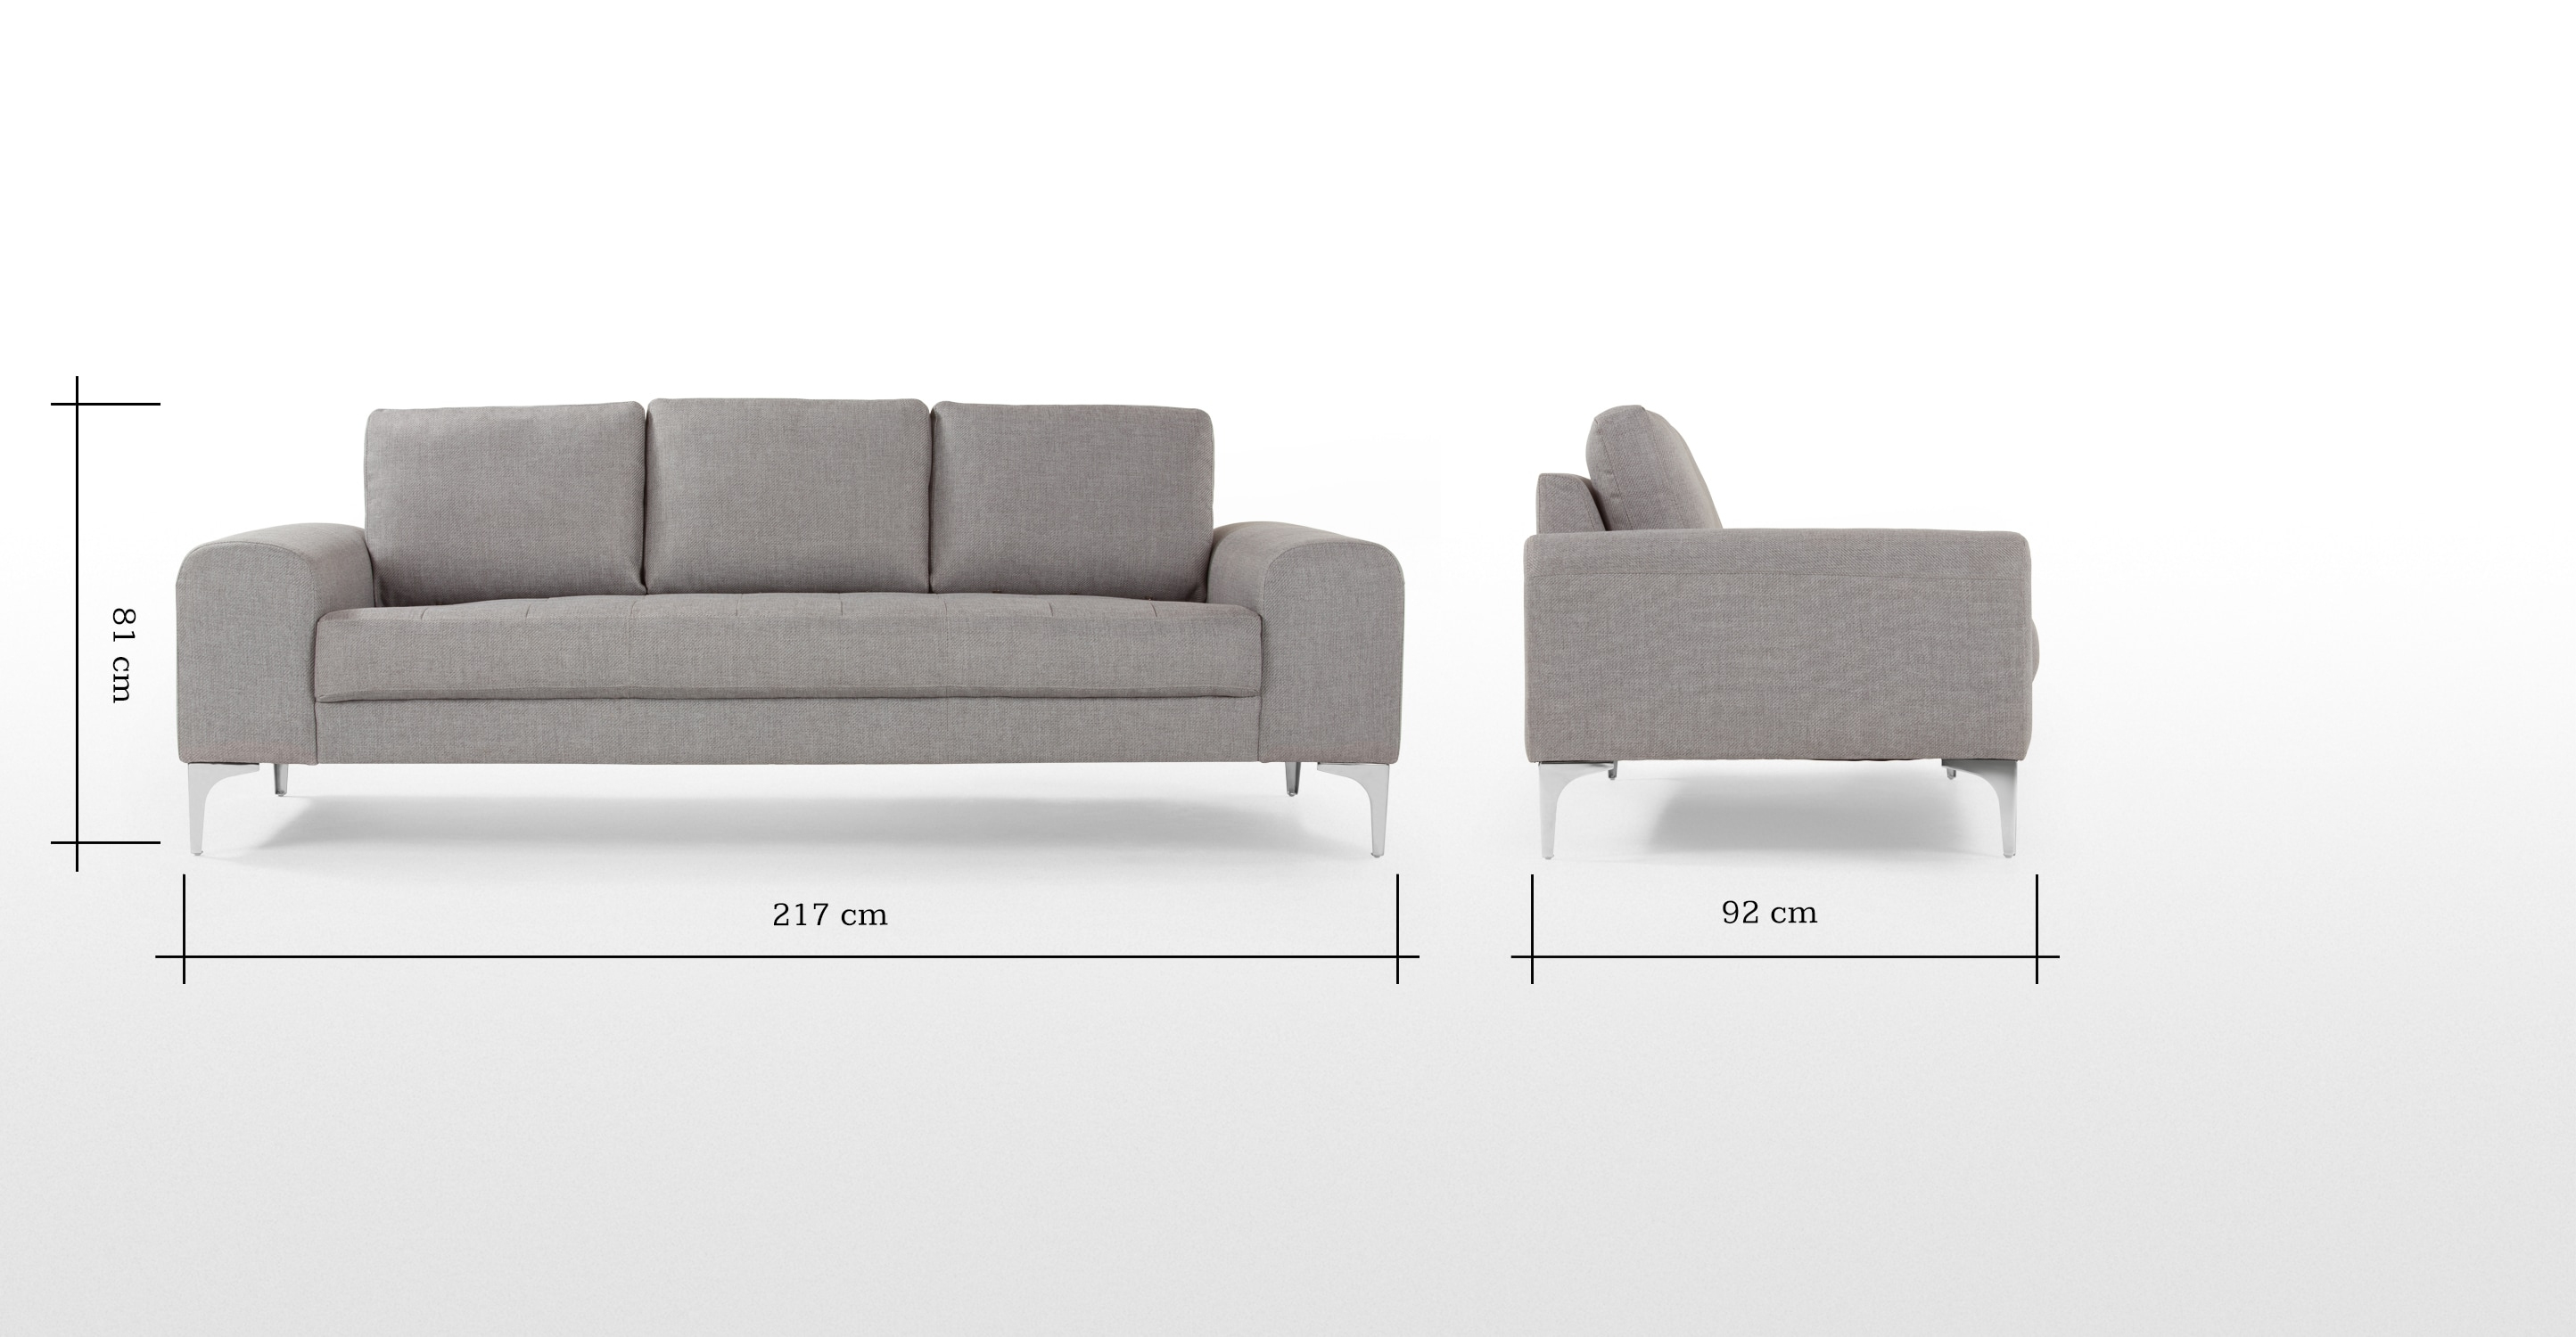 Vittorio 3 Seater Sofa In Pearl Grey | Made avec Sofa 3 Places